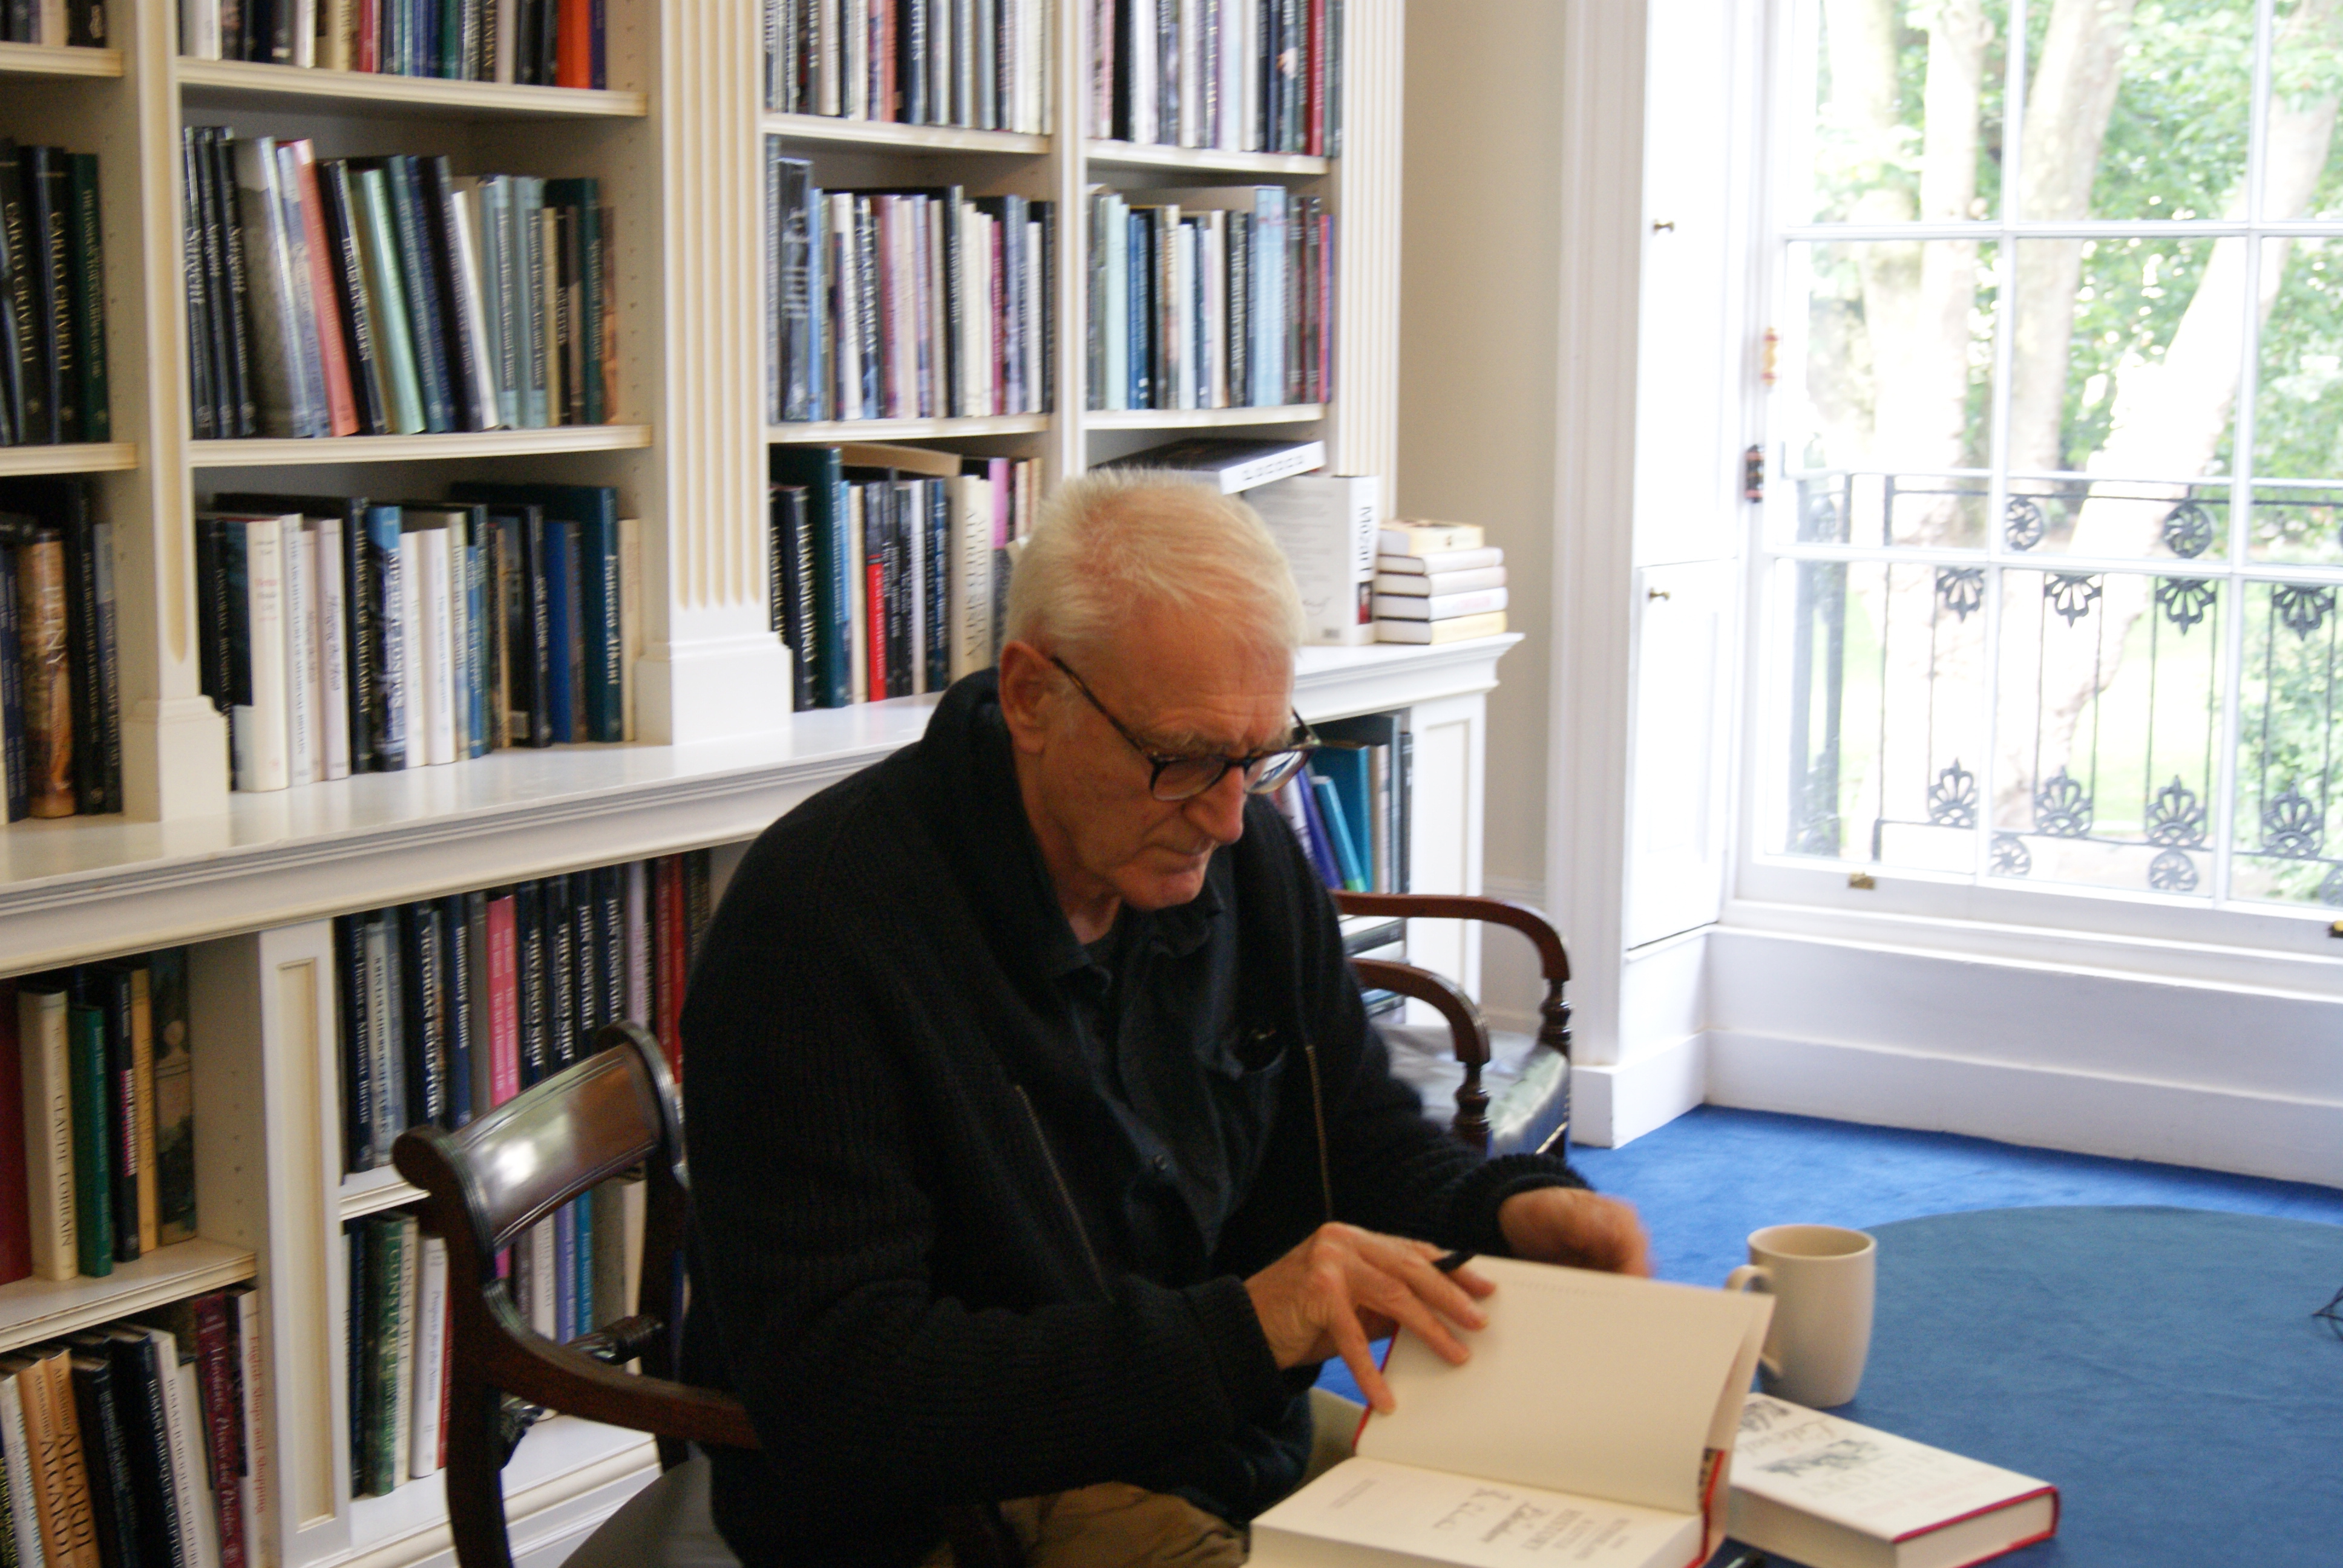 Author John Sutherland signing copies of 'A Little History of Literature'